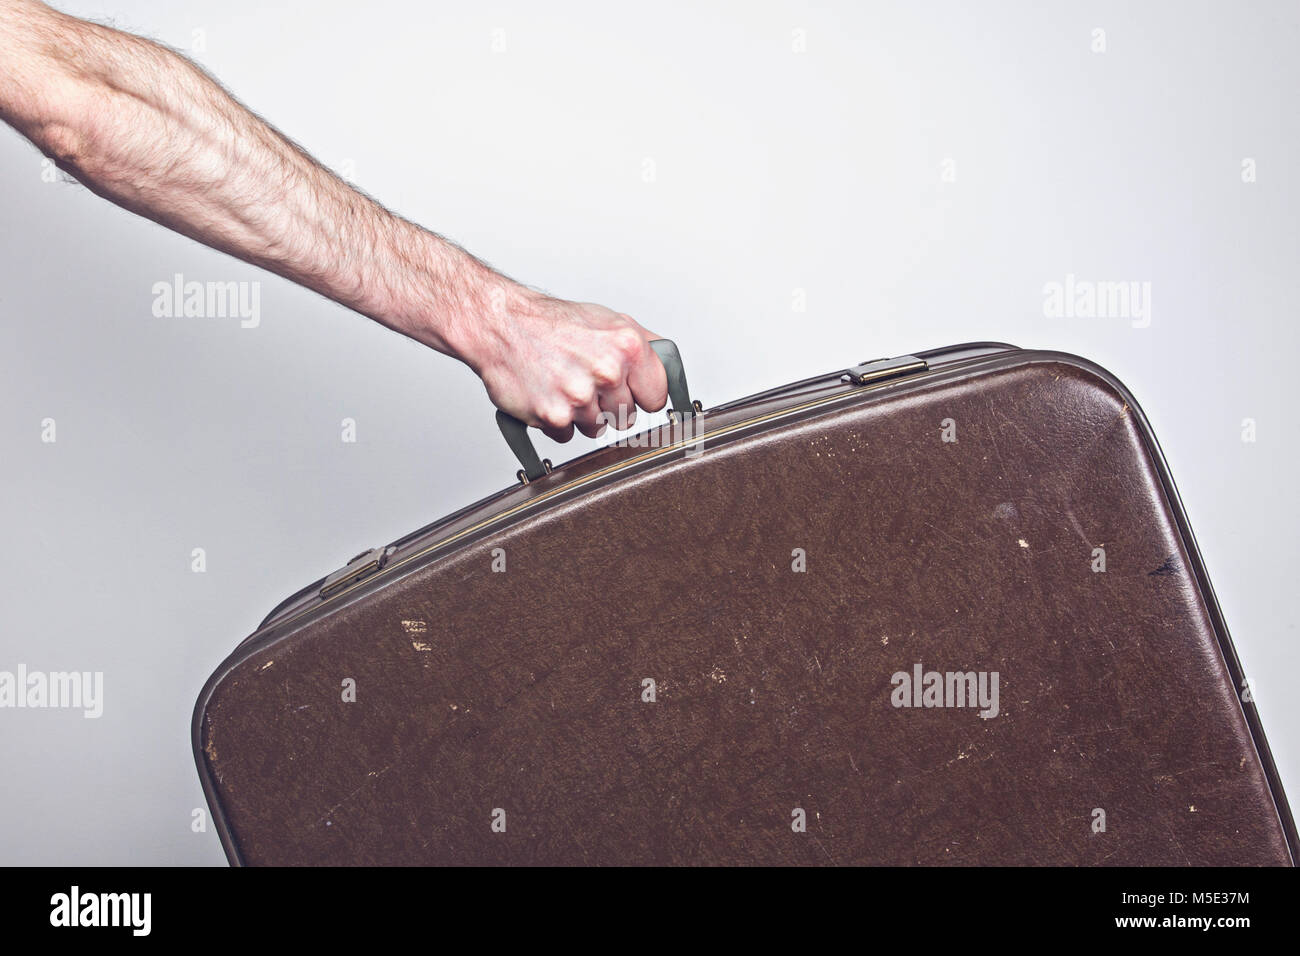 Travel concept. Person holding a vintage travel suitcase - Stock Image